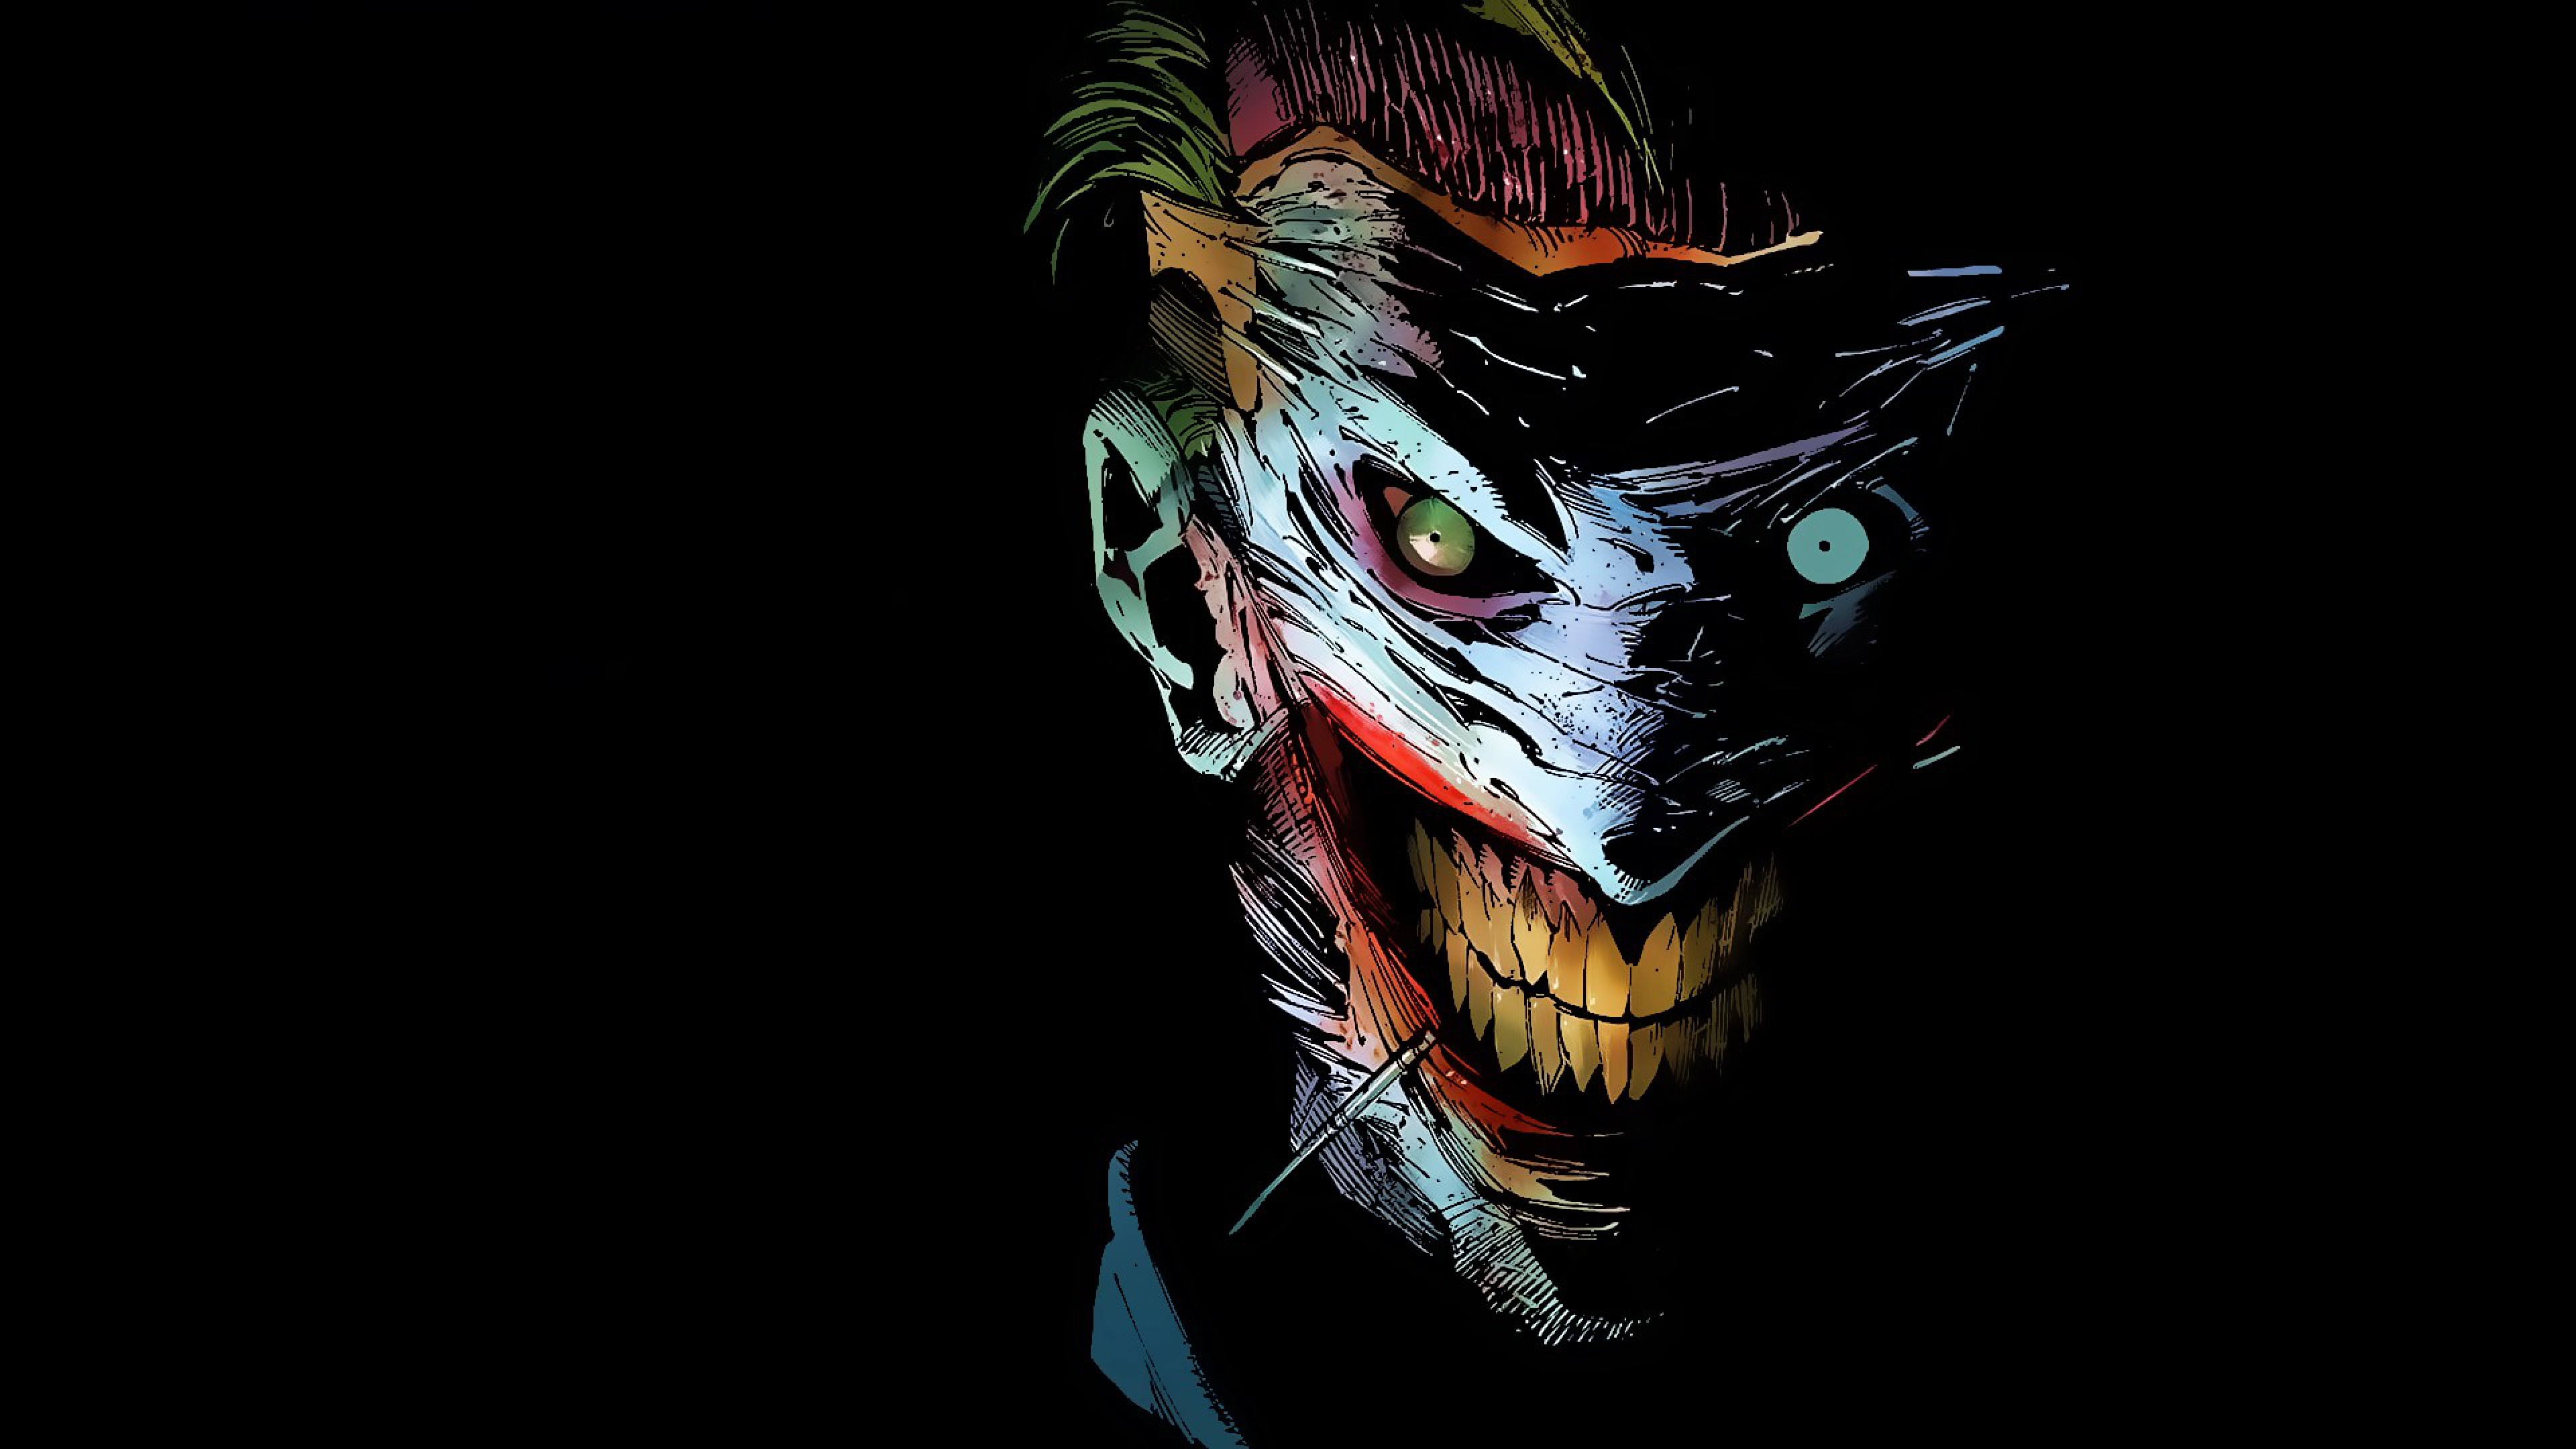 575 joker hd wallpapers | background images - wallpaper abyss